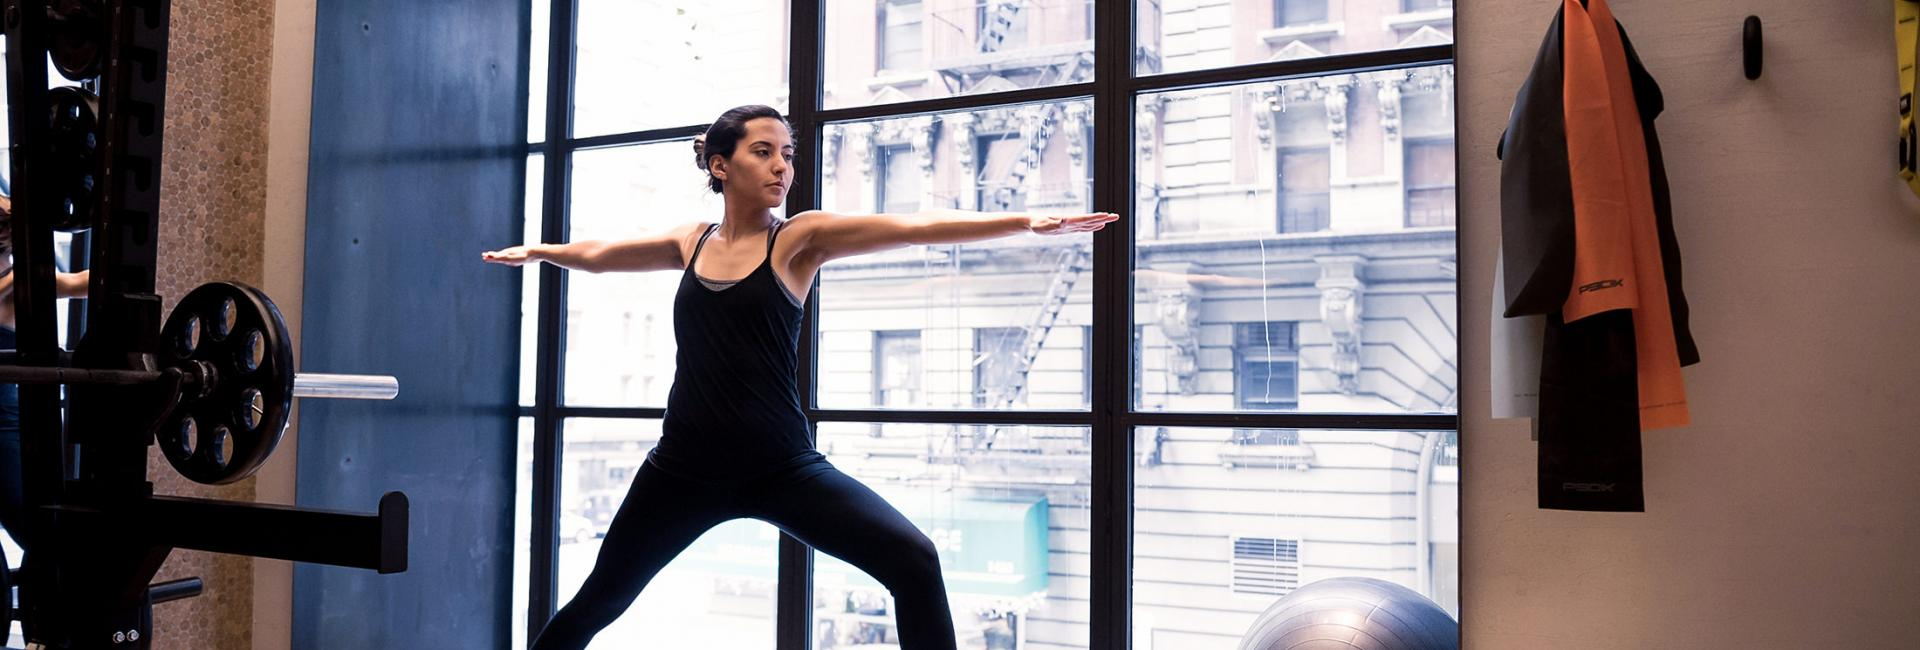 woman doing yoga in a gym with floor to ceiling windows